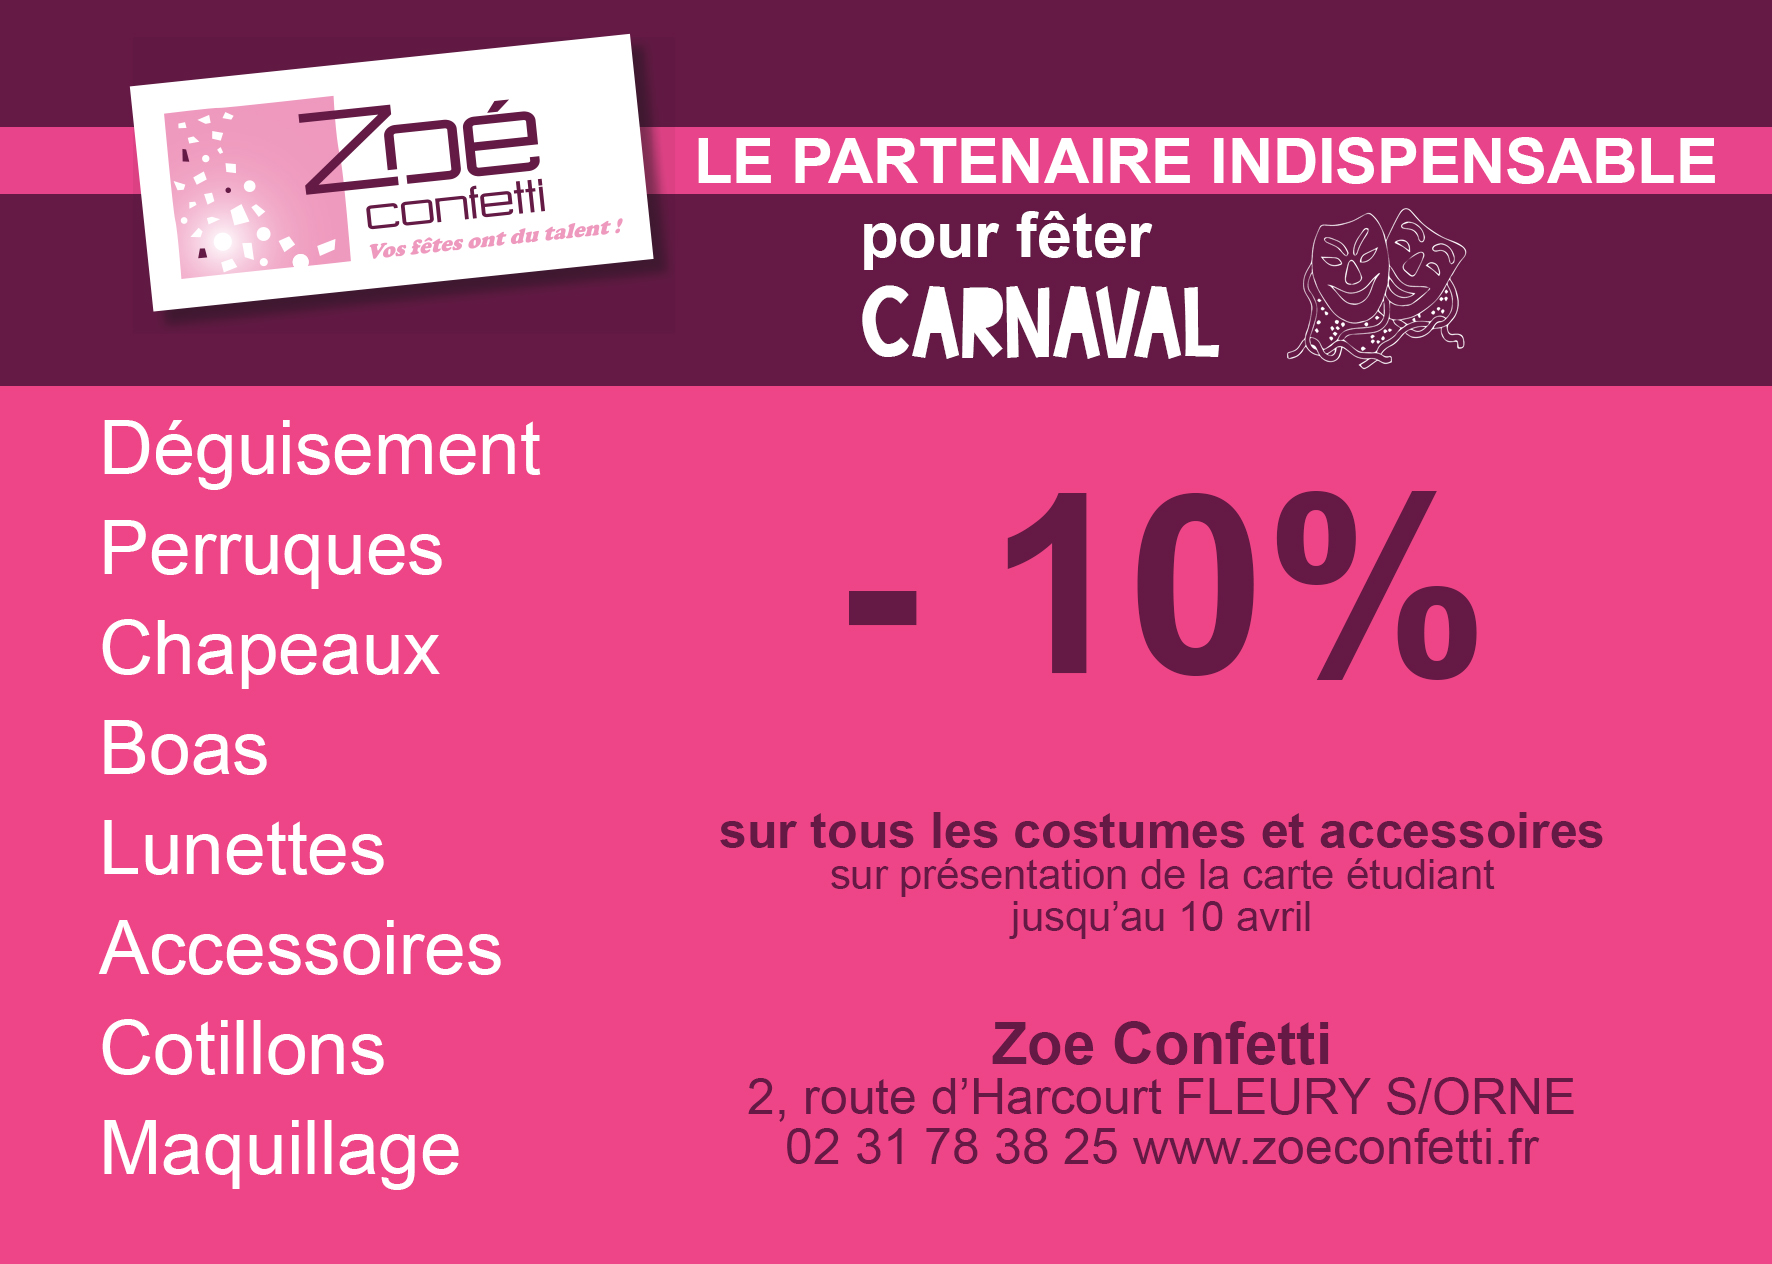 zo confetti partenaire du carnaval etudiant de caen f d ration campus basse normandie. Black Bedroom Furniture Sets. Home Design Ideas